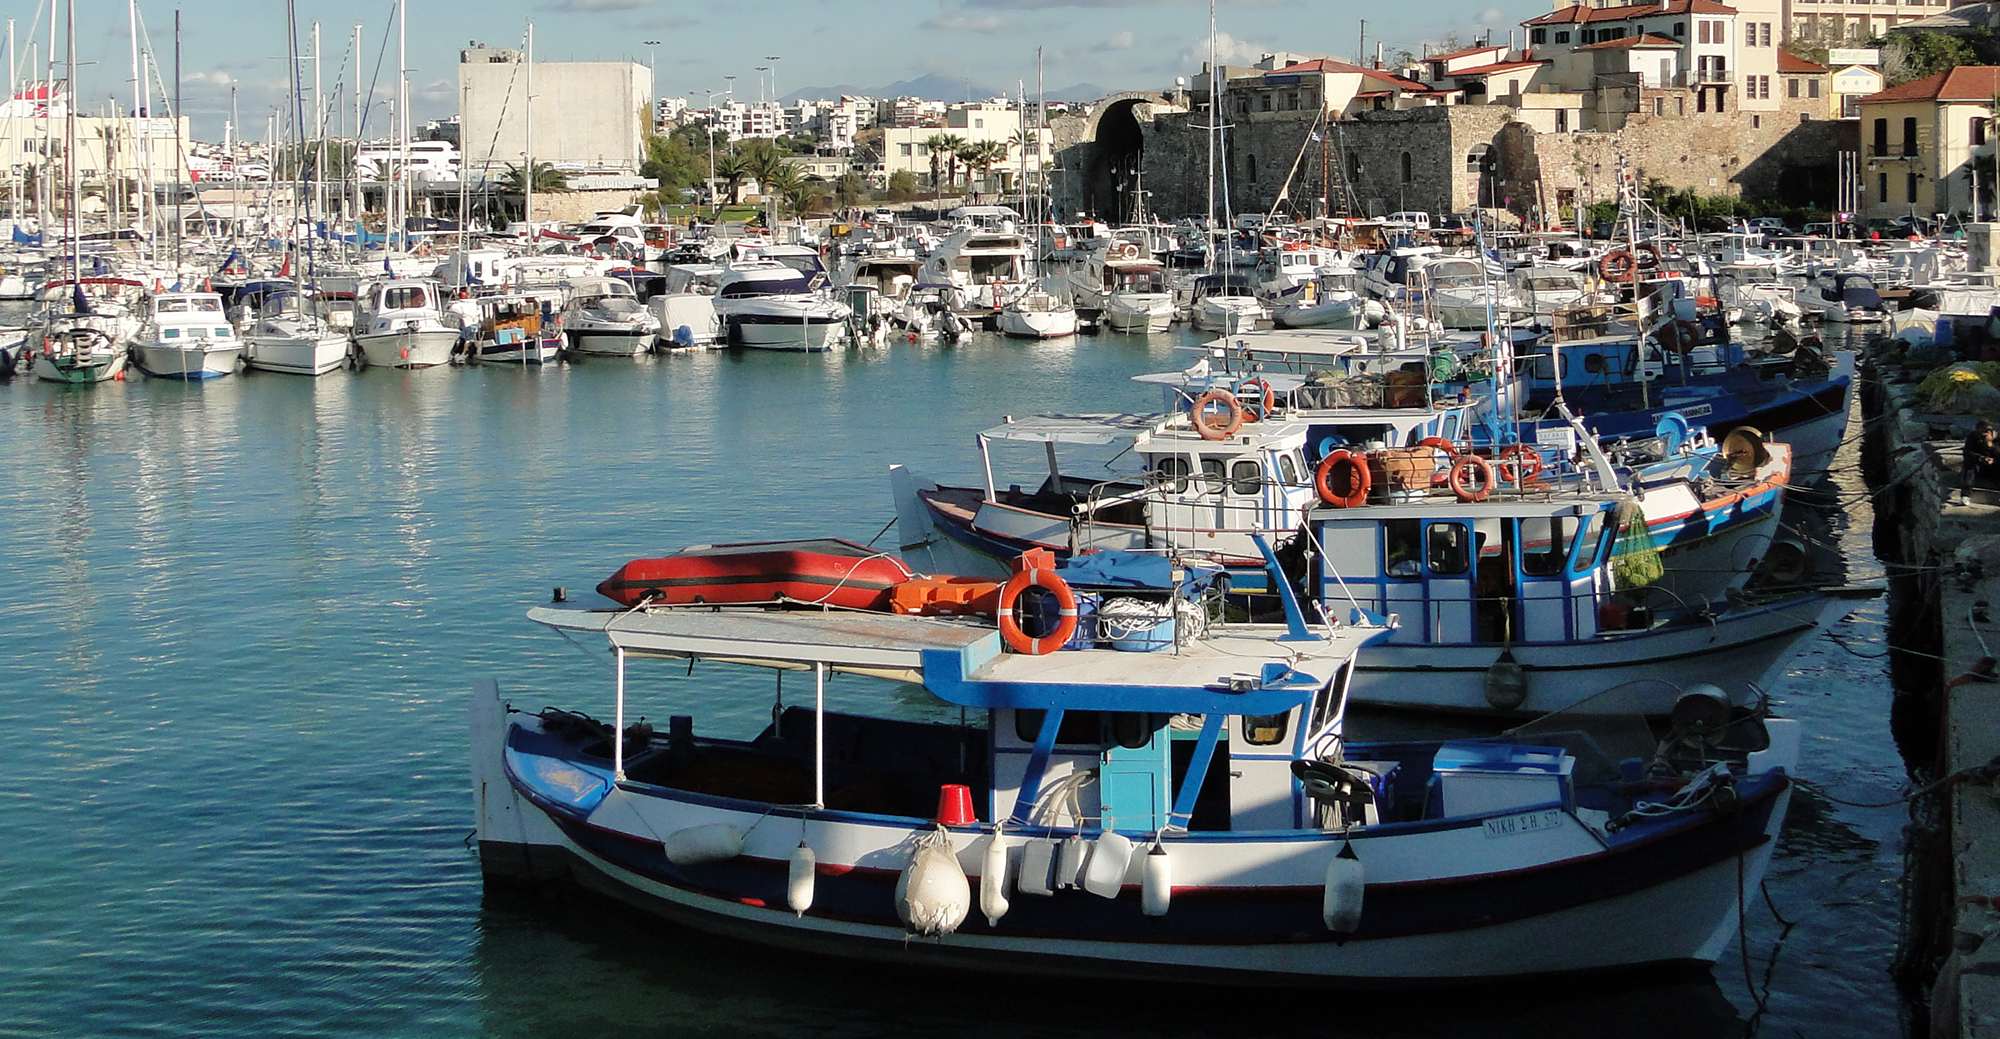 Heraklion Port in Crete